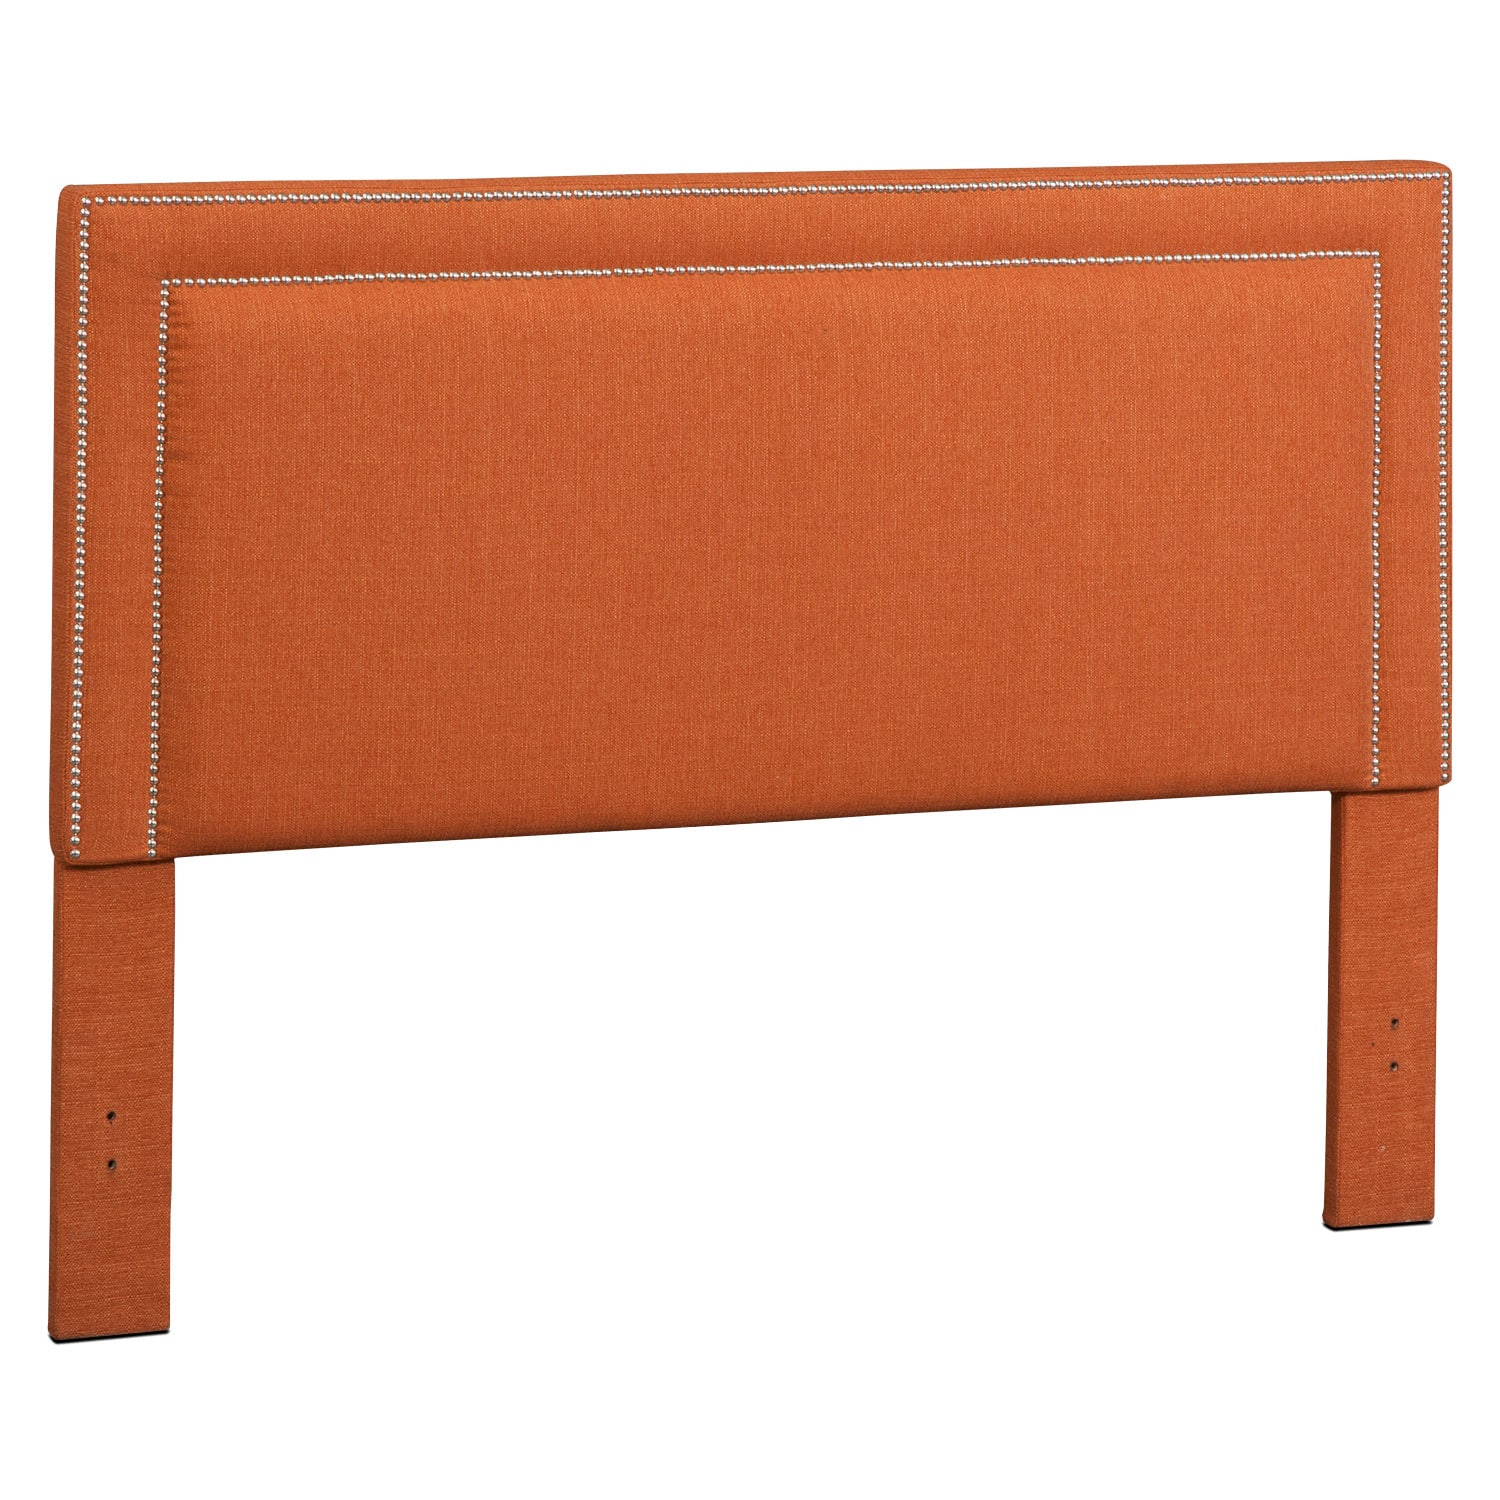 Bedroom Furniture - Natalie King Upholstered Headboard - Orange